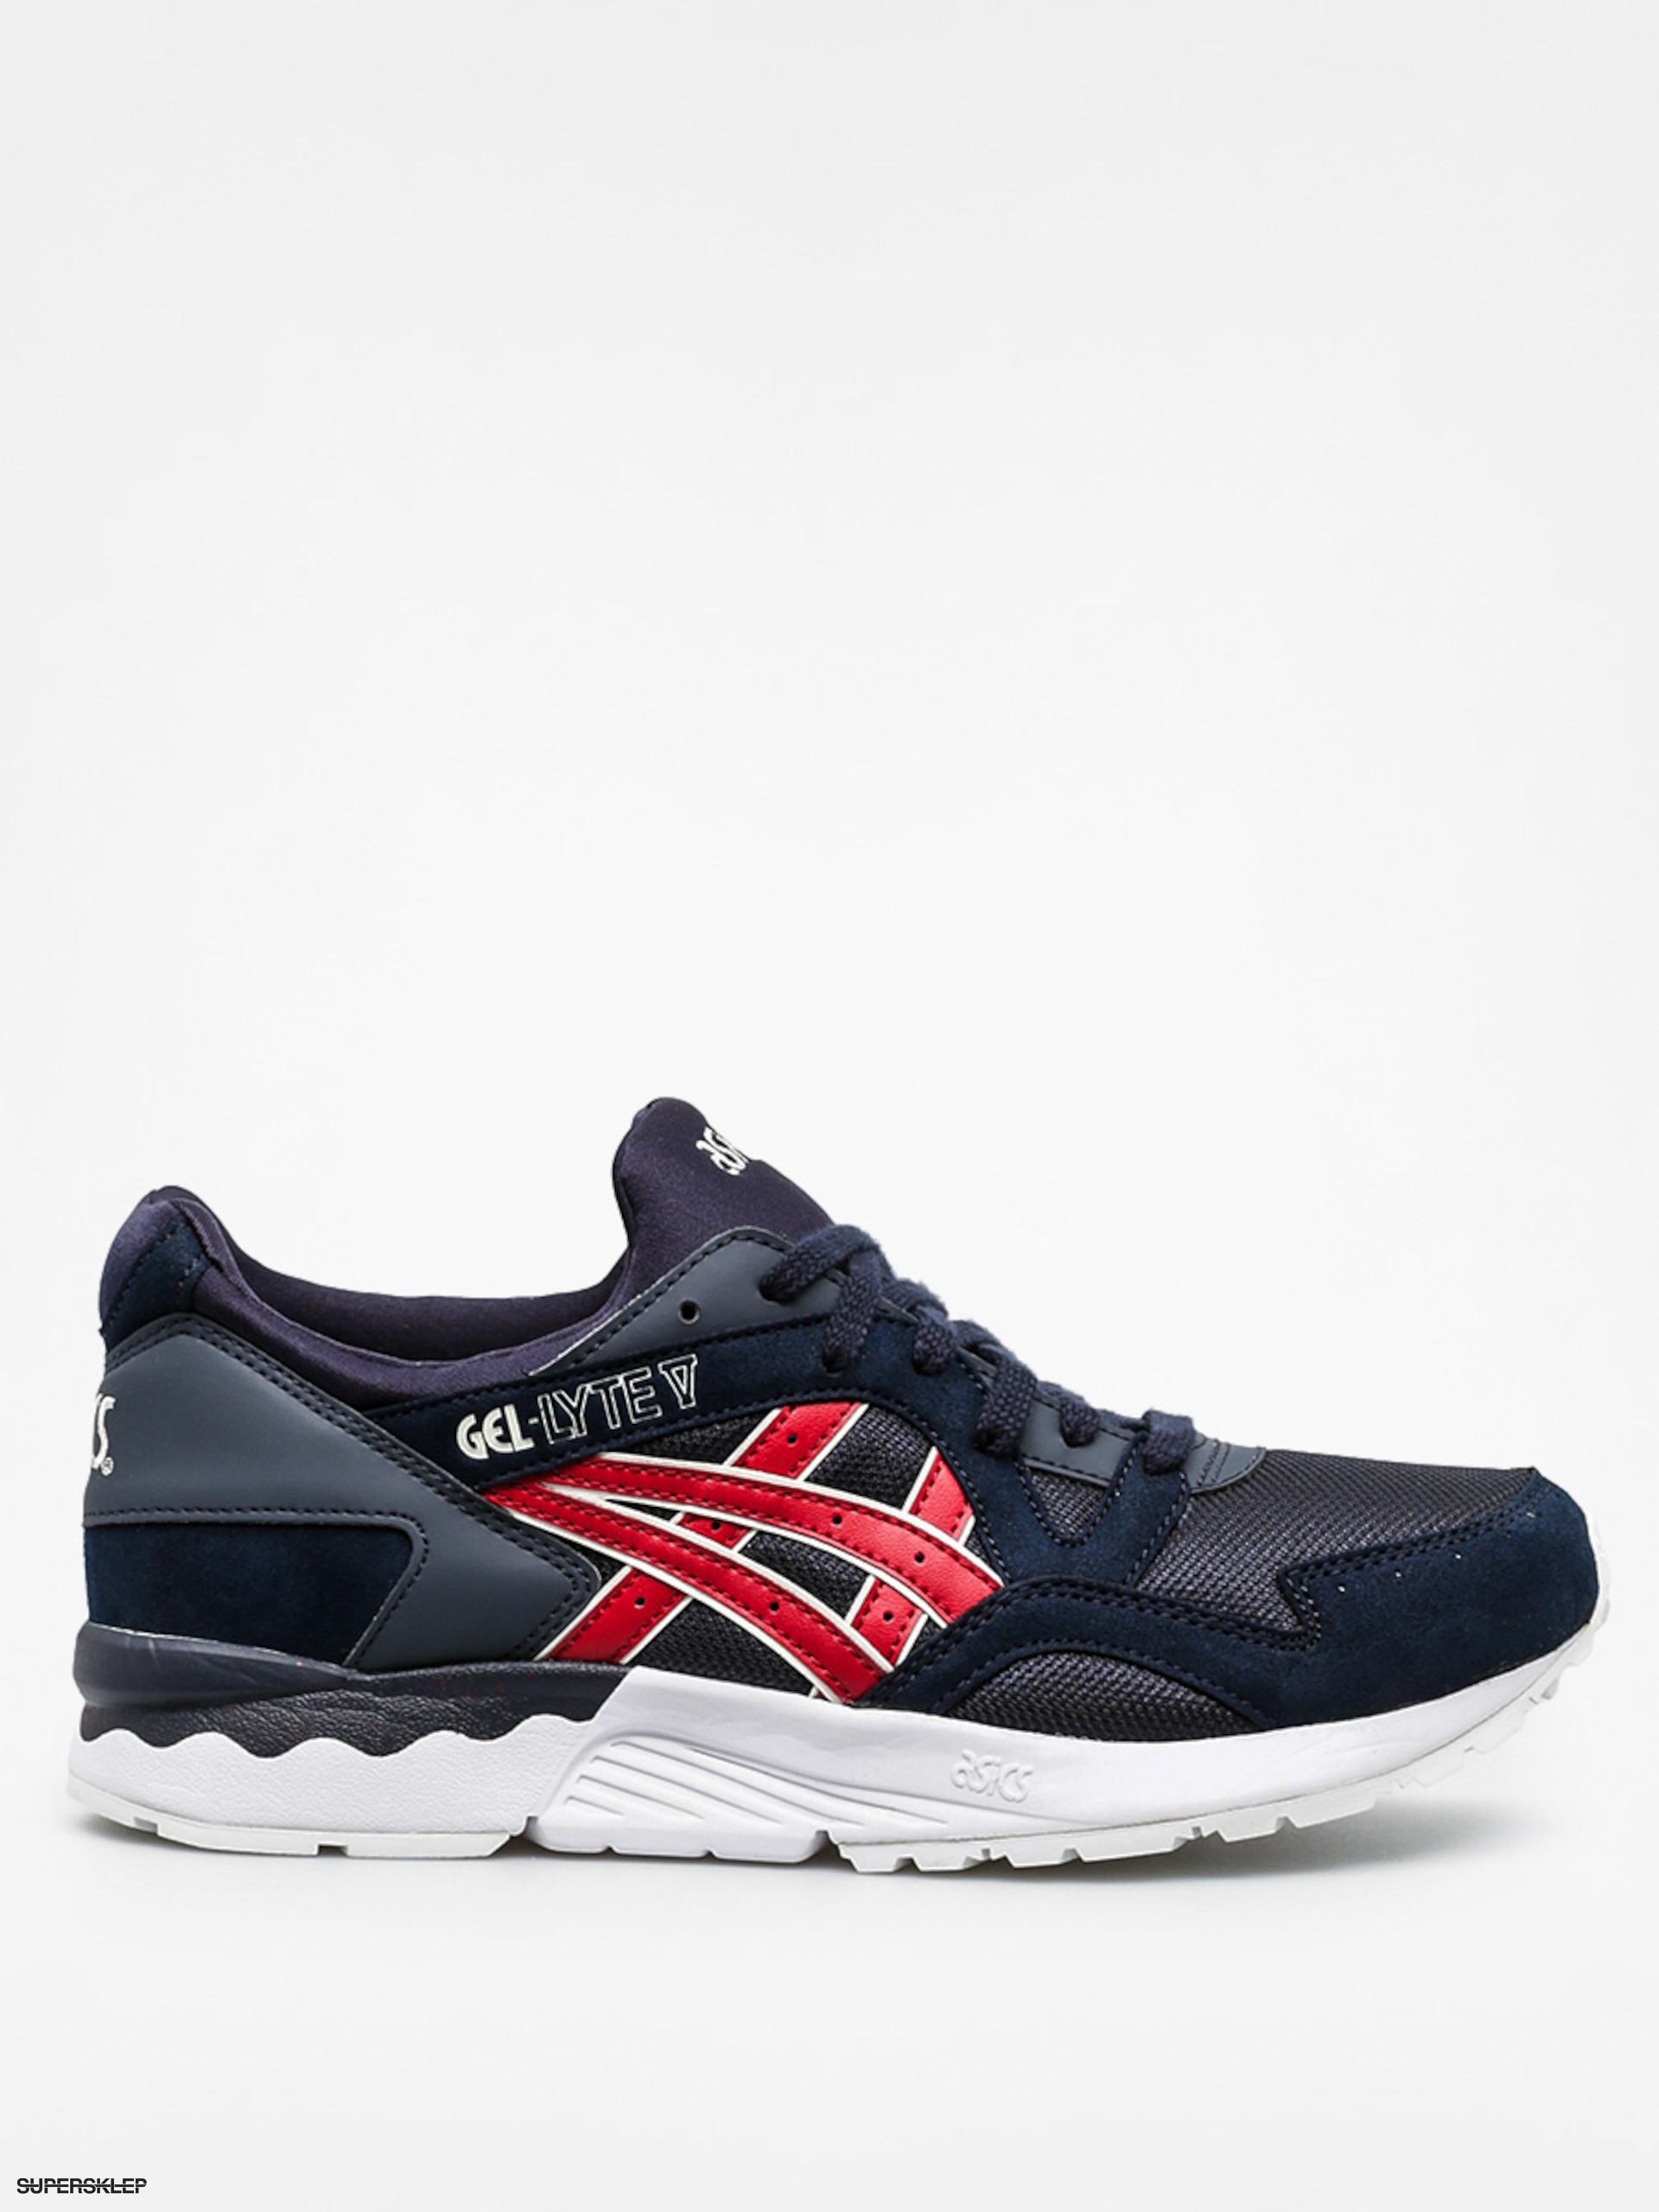 Buty Asics Gel Lyte V (india ink/burgundy)